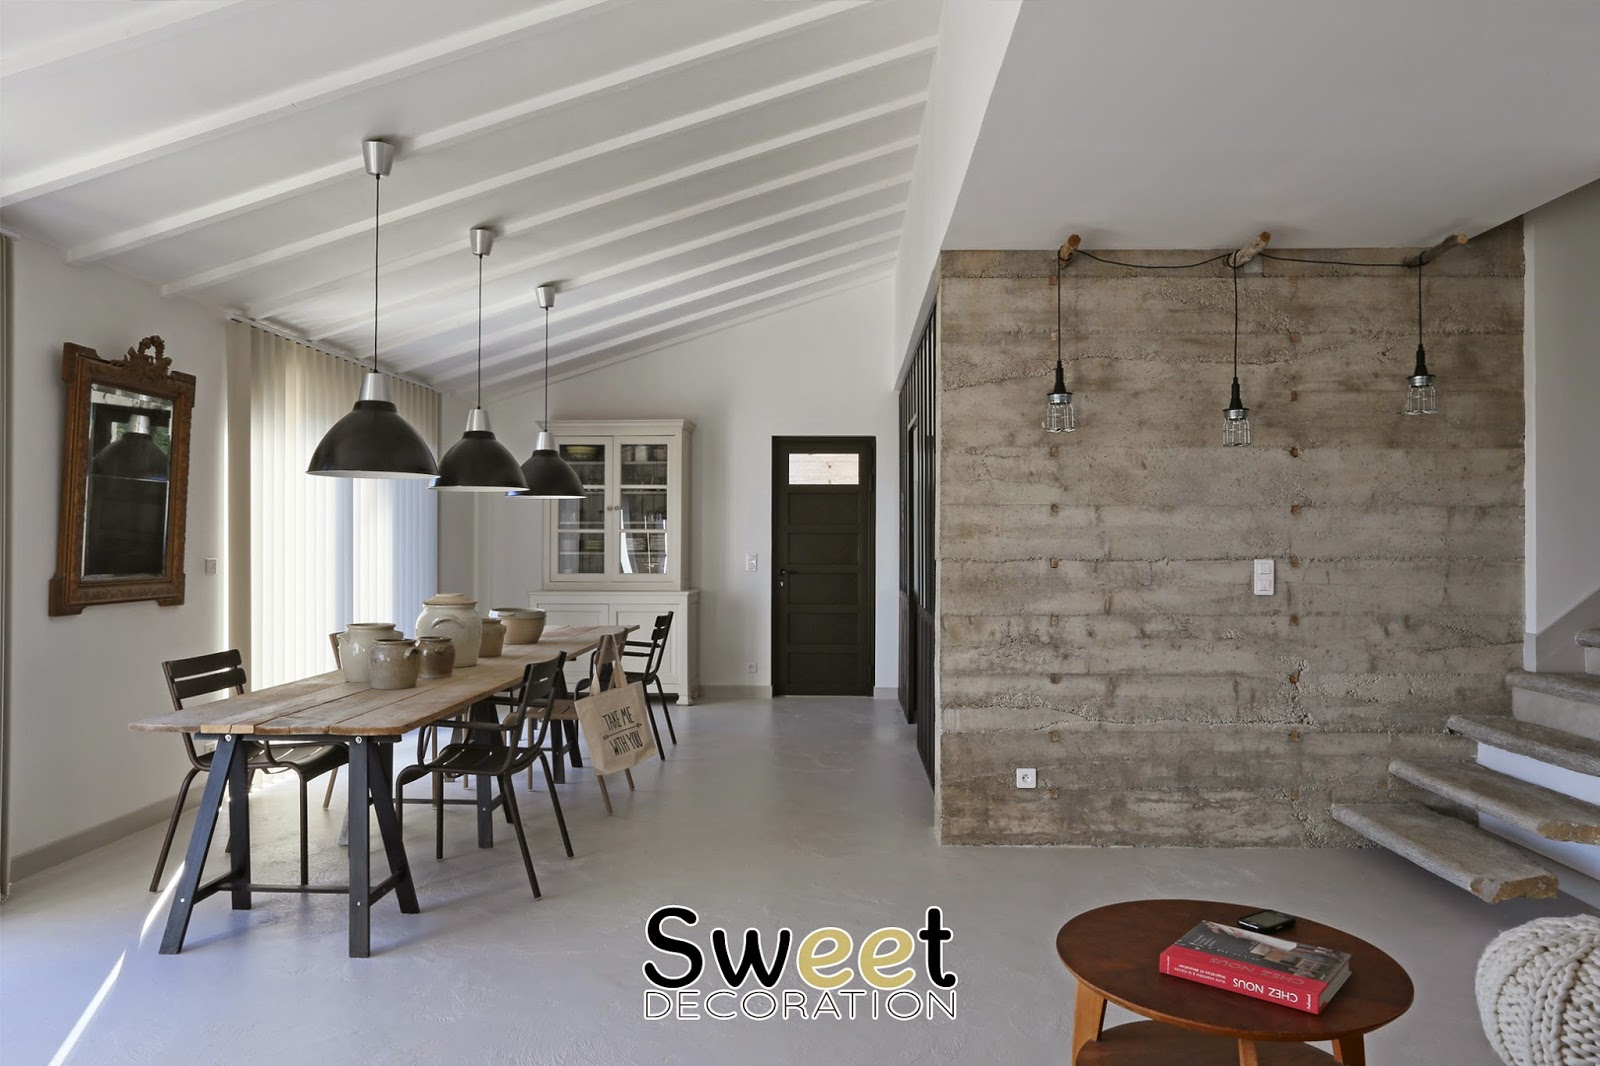 Am nagement int rieur d 39 une maison contemporaine sweet for Idee amenagement interieur maison